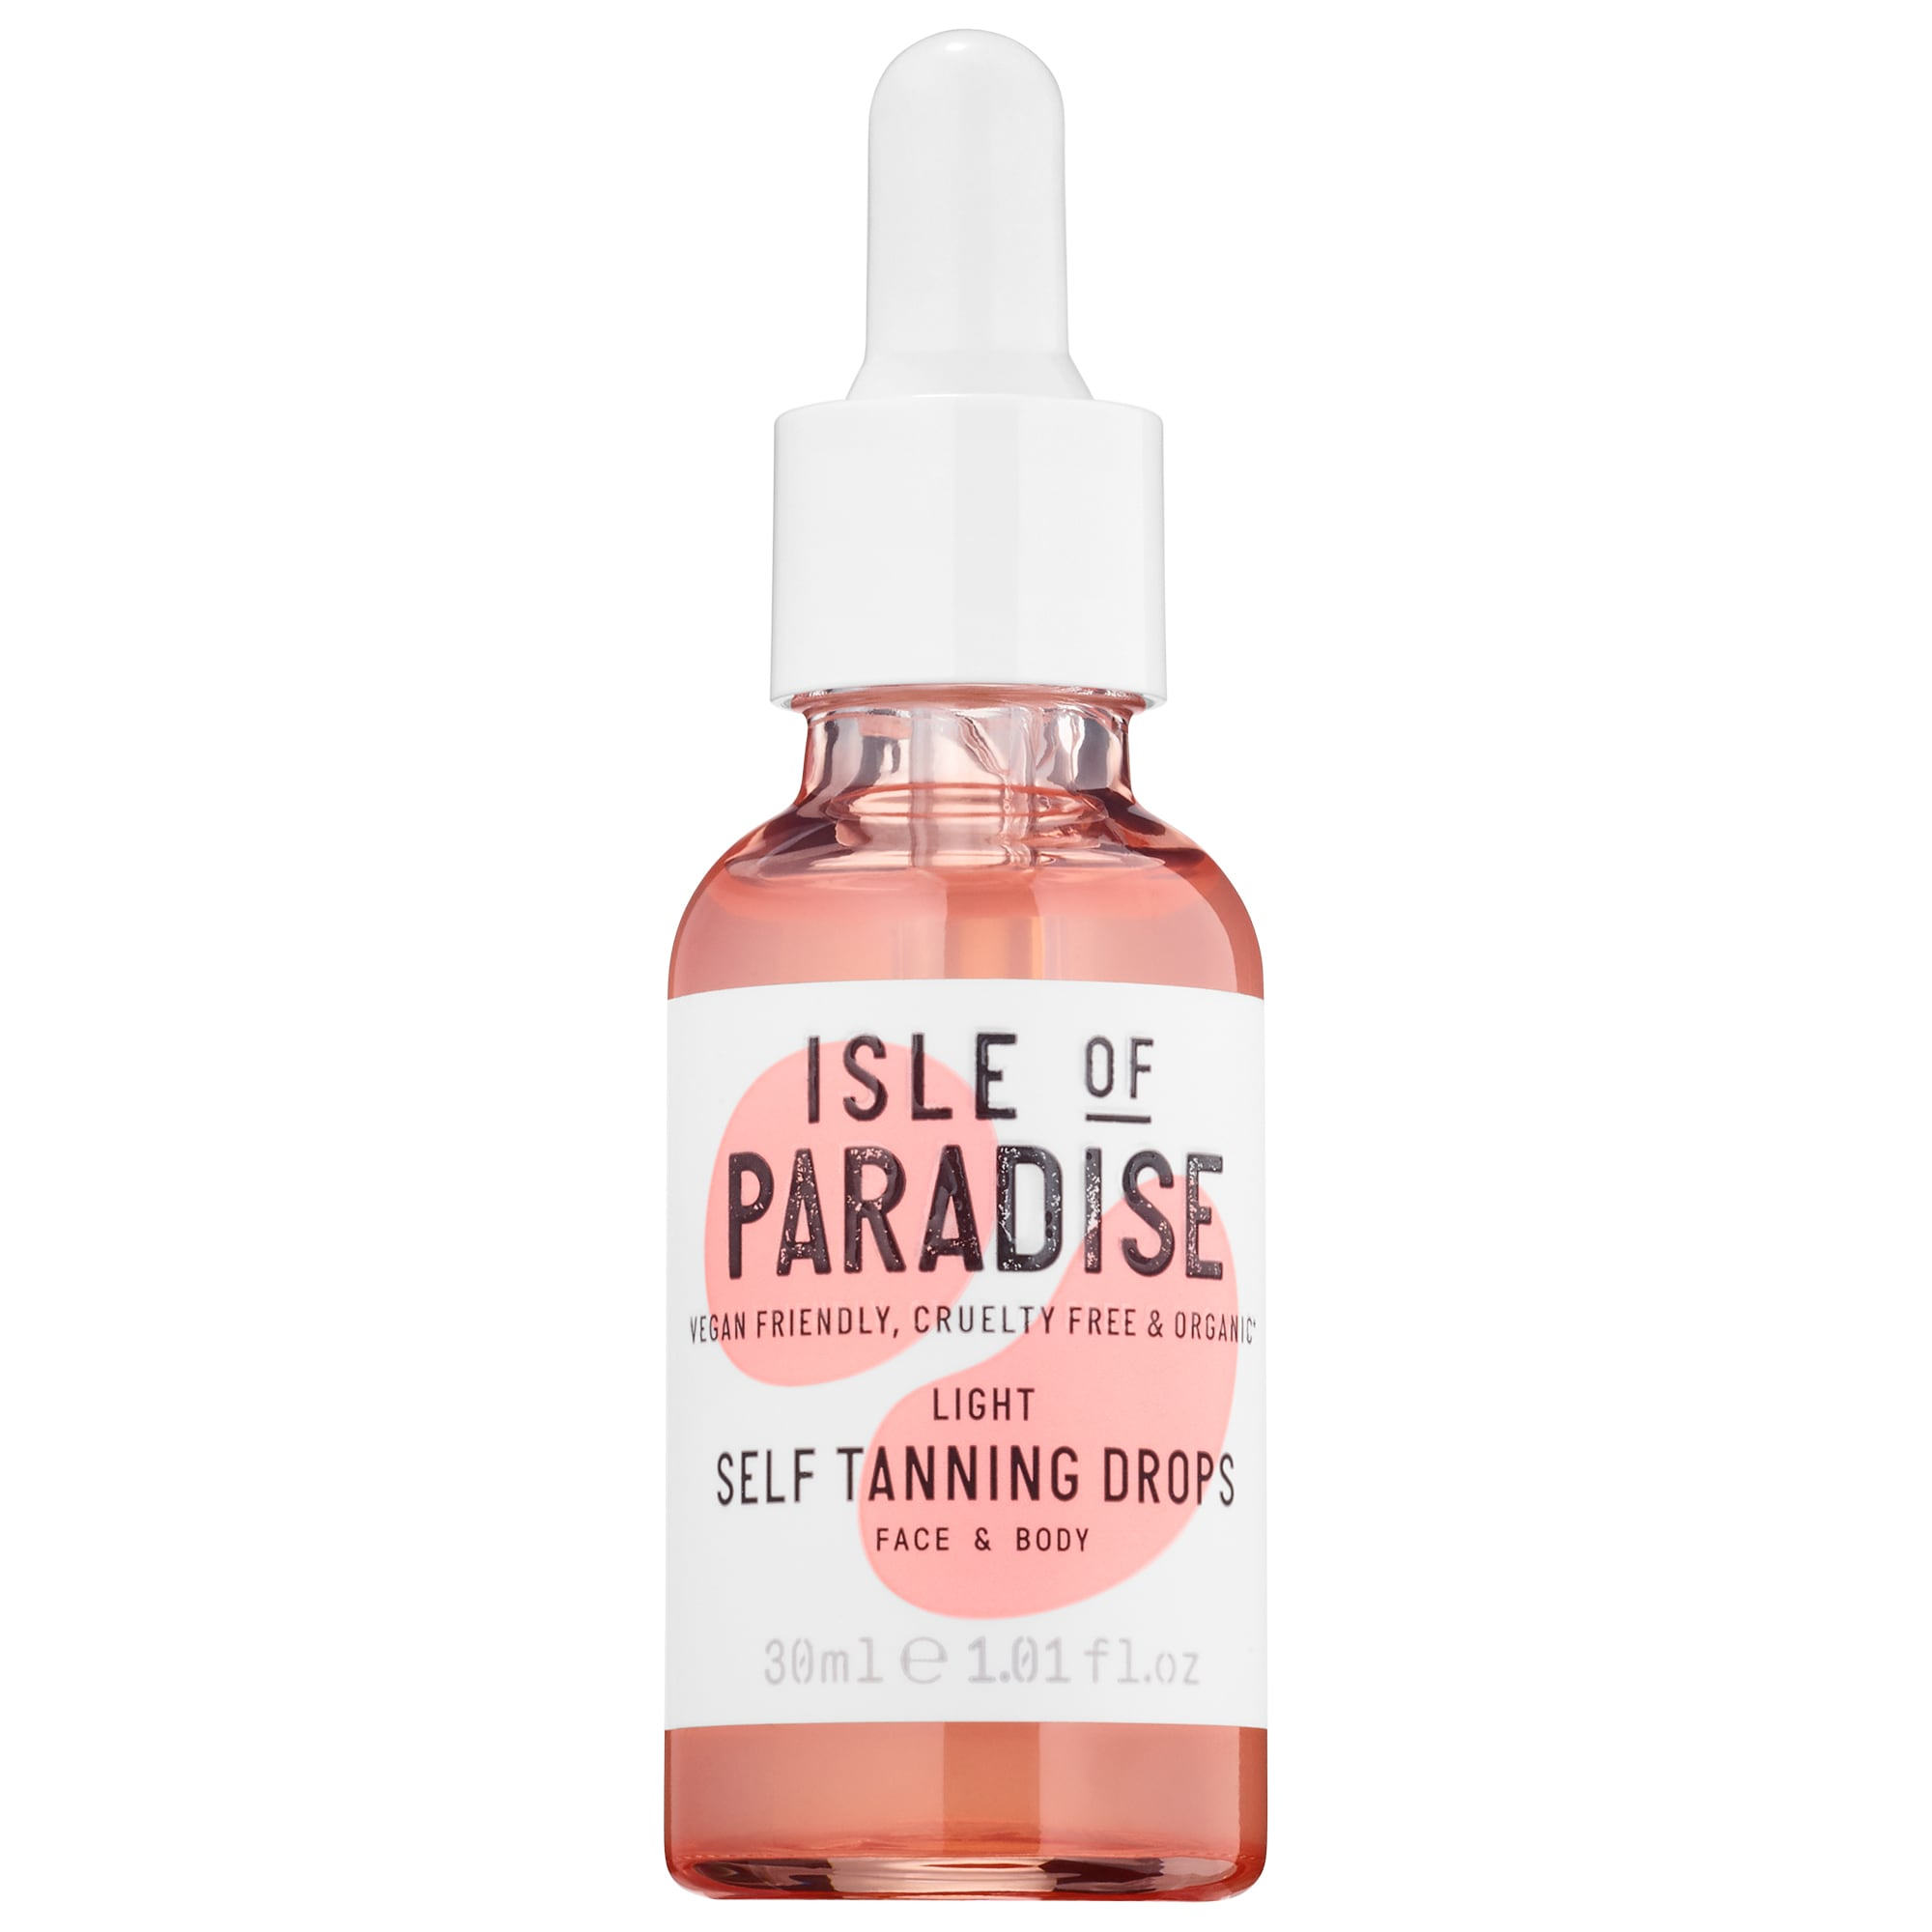 Isle of Paradise - Self Tanning Drops